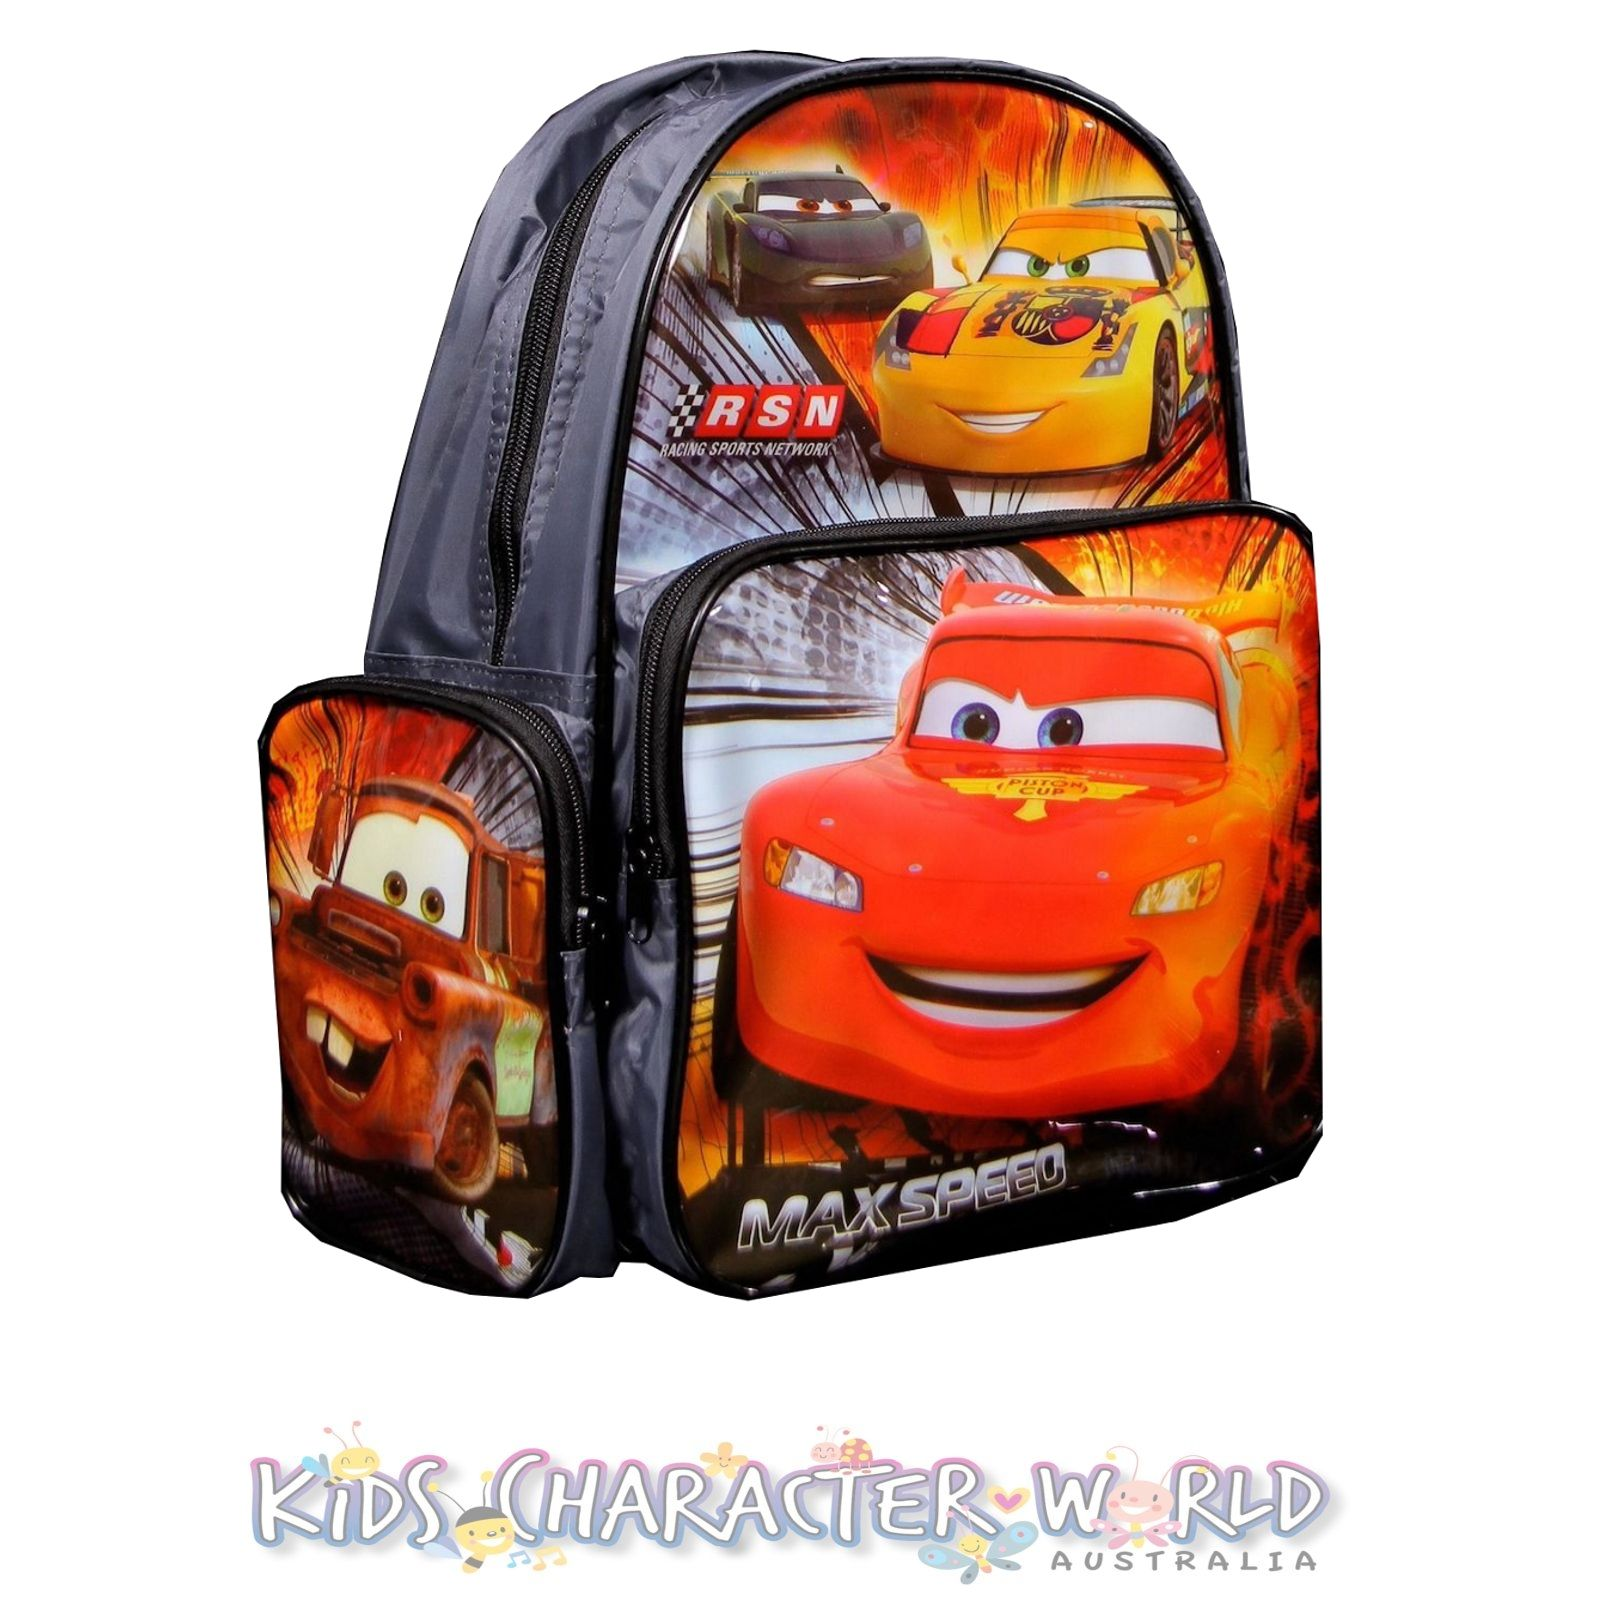 Cars Caprice Backpack $21.95 (eBay: kidscharacterworld 2013 - Email ...